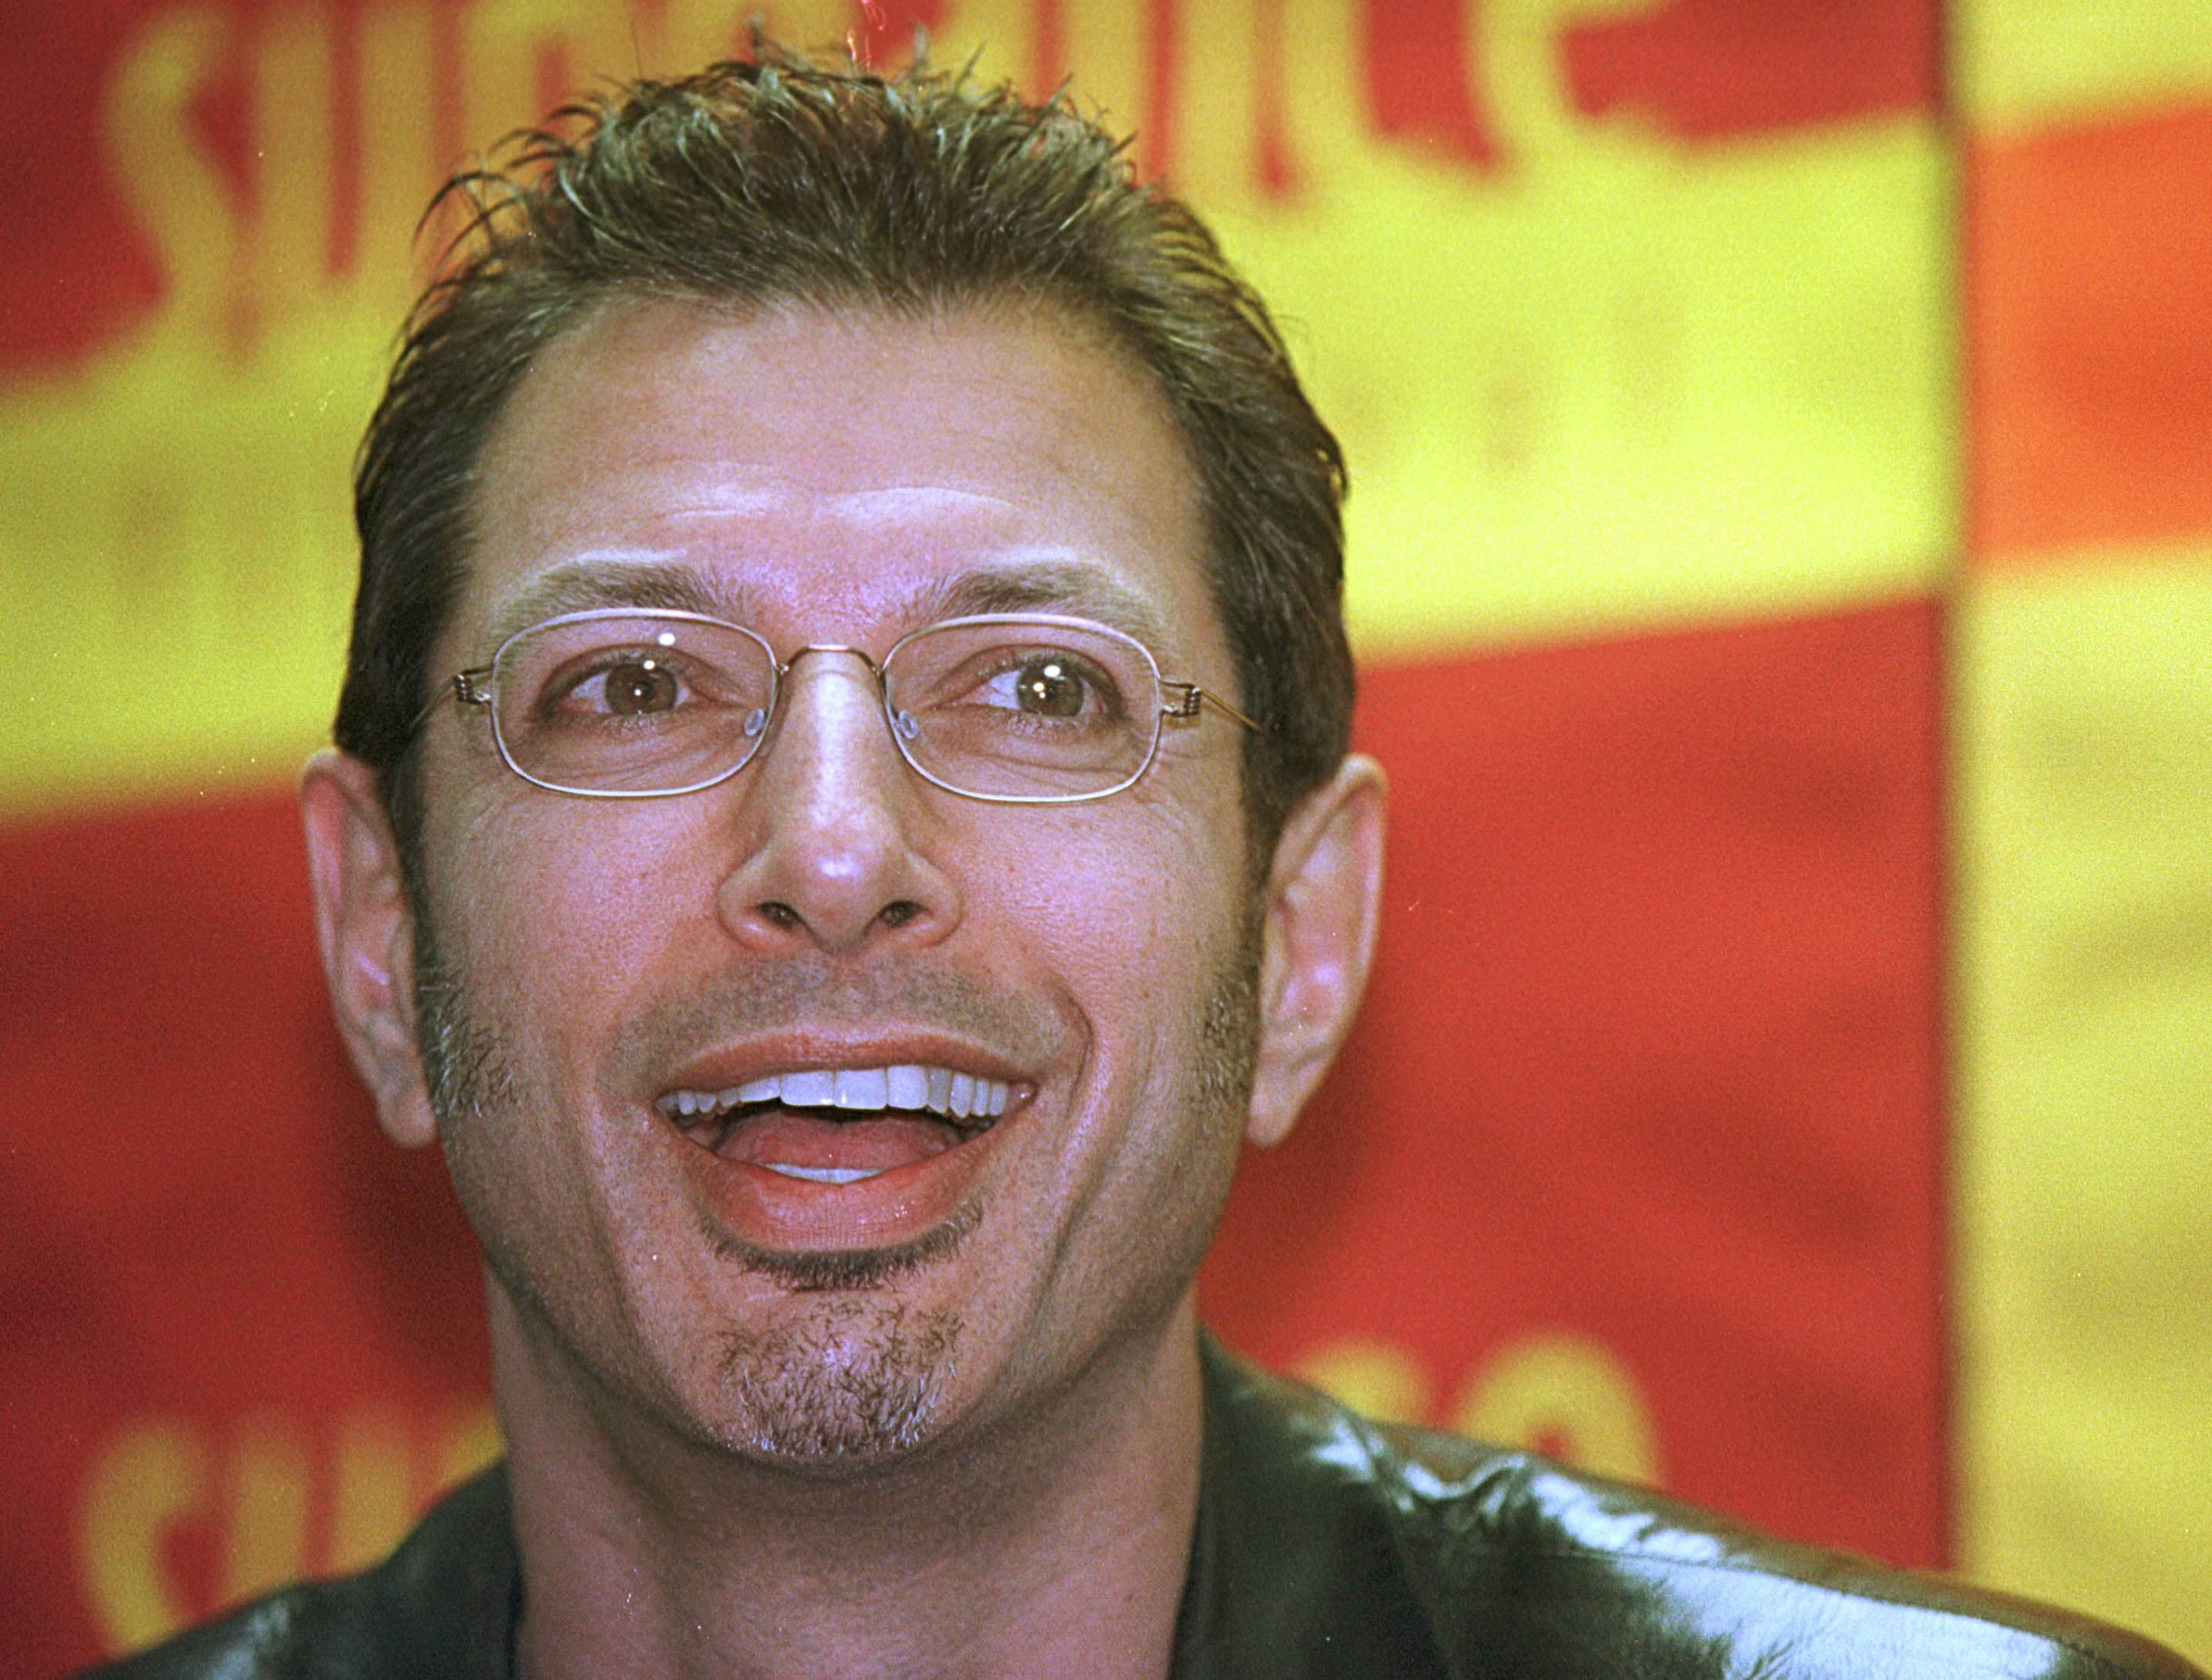 Sundance Film Festival. Jeff Goldblum Headshot.